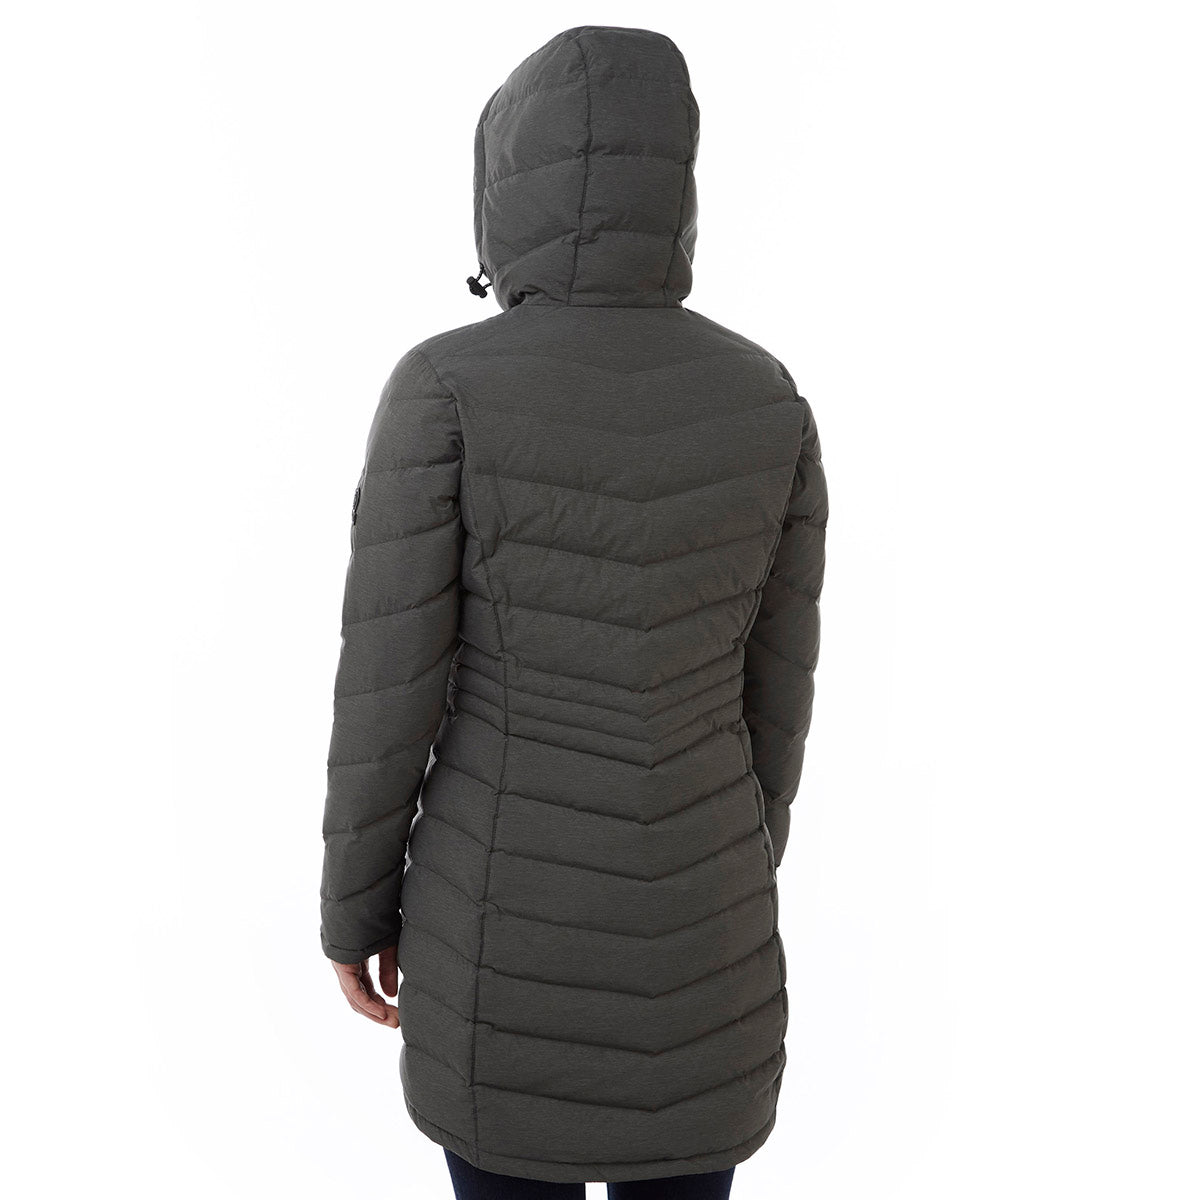 Bramley Womens Down Jacket - Dark Grey Marl image 4